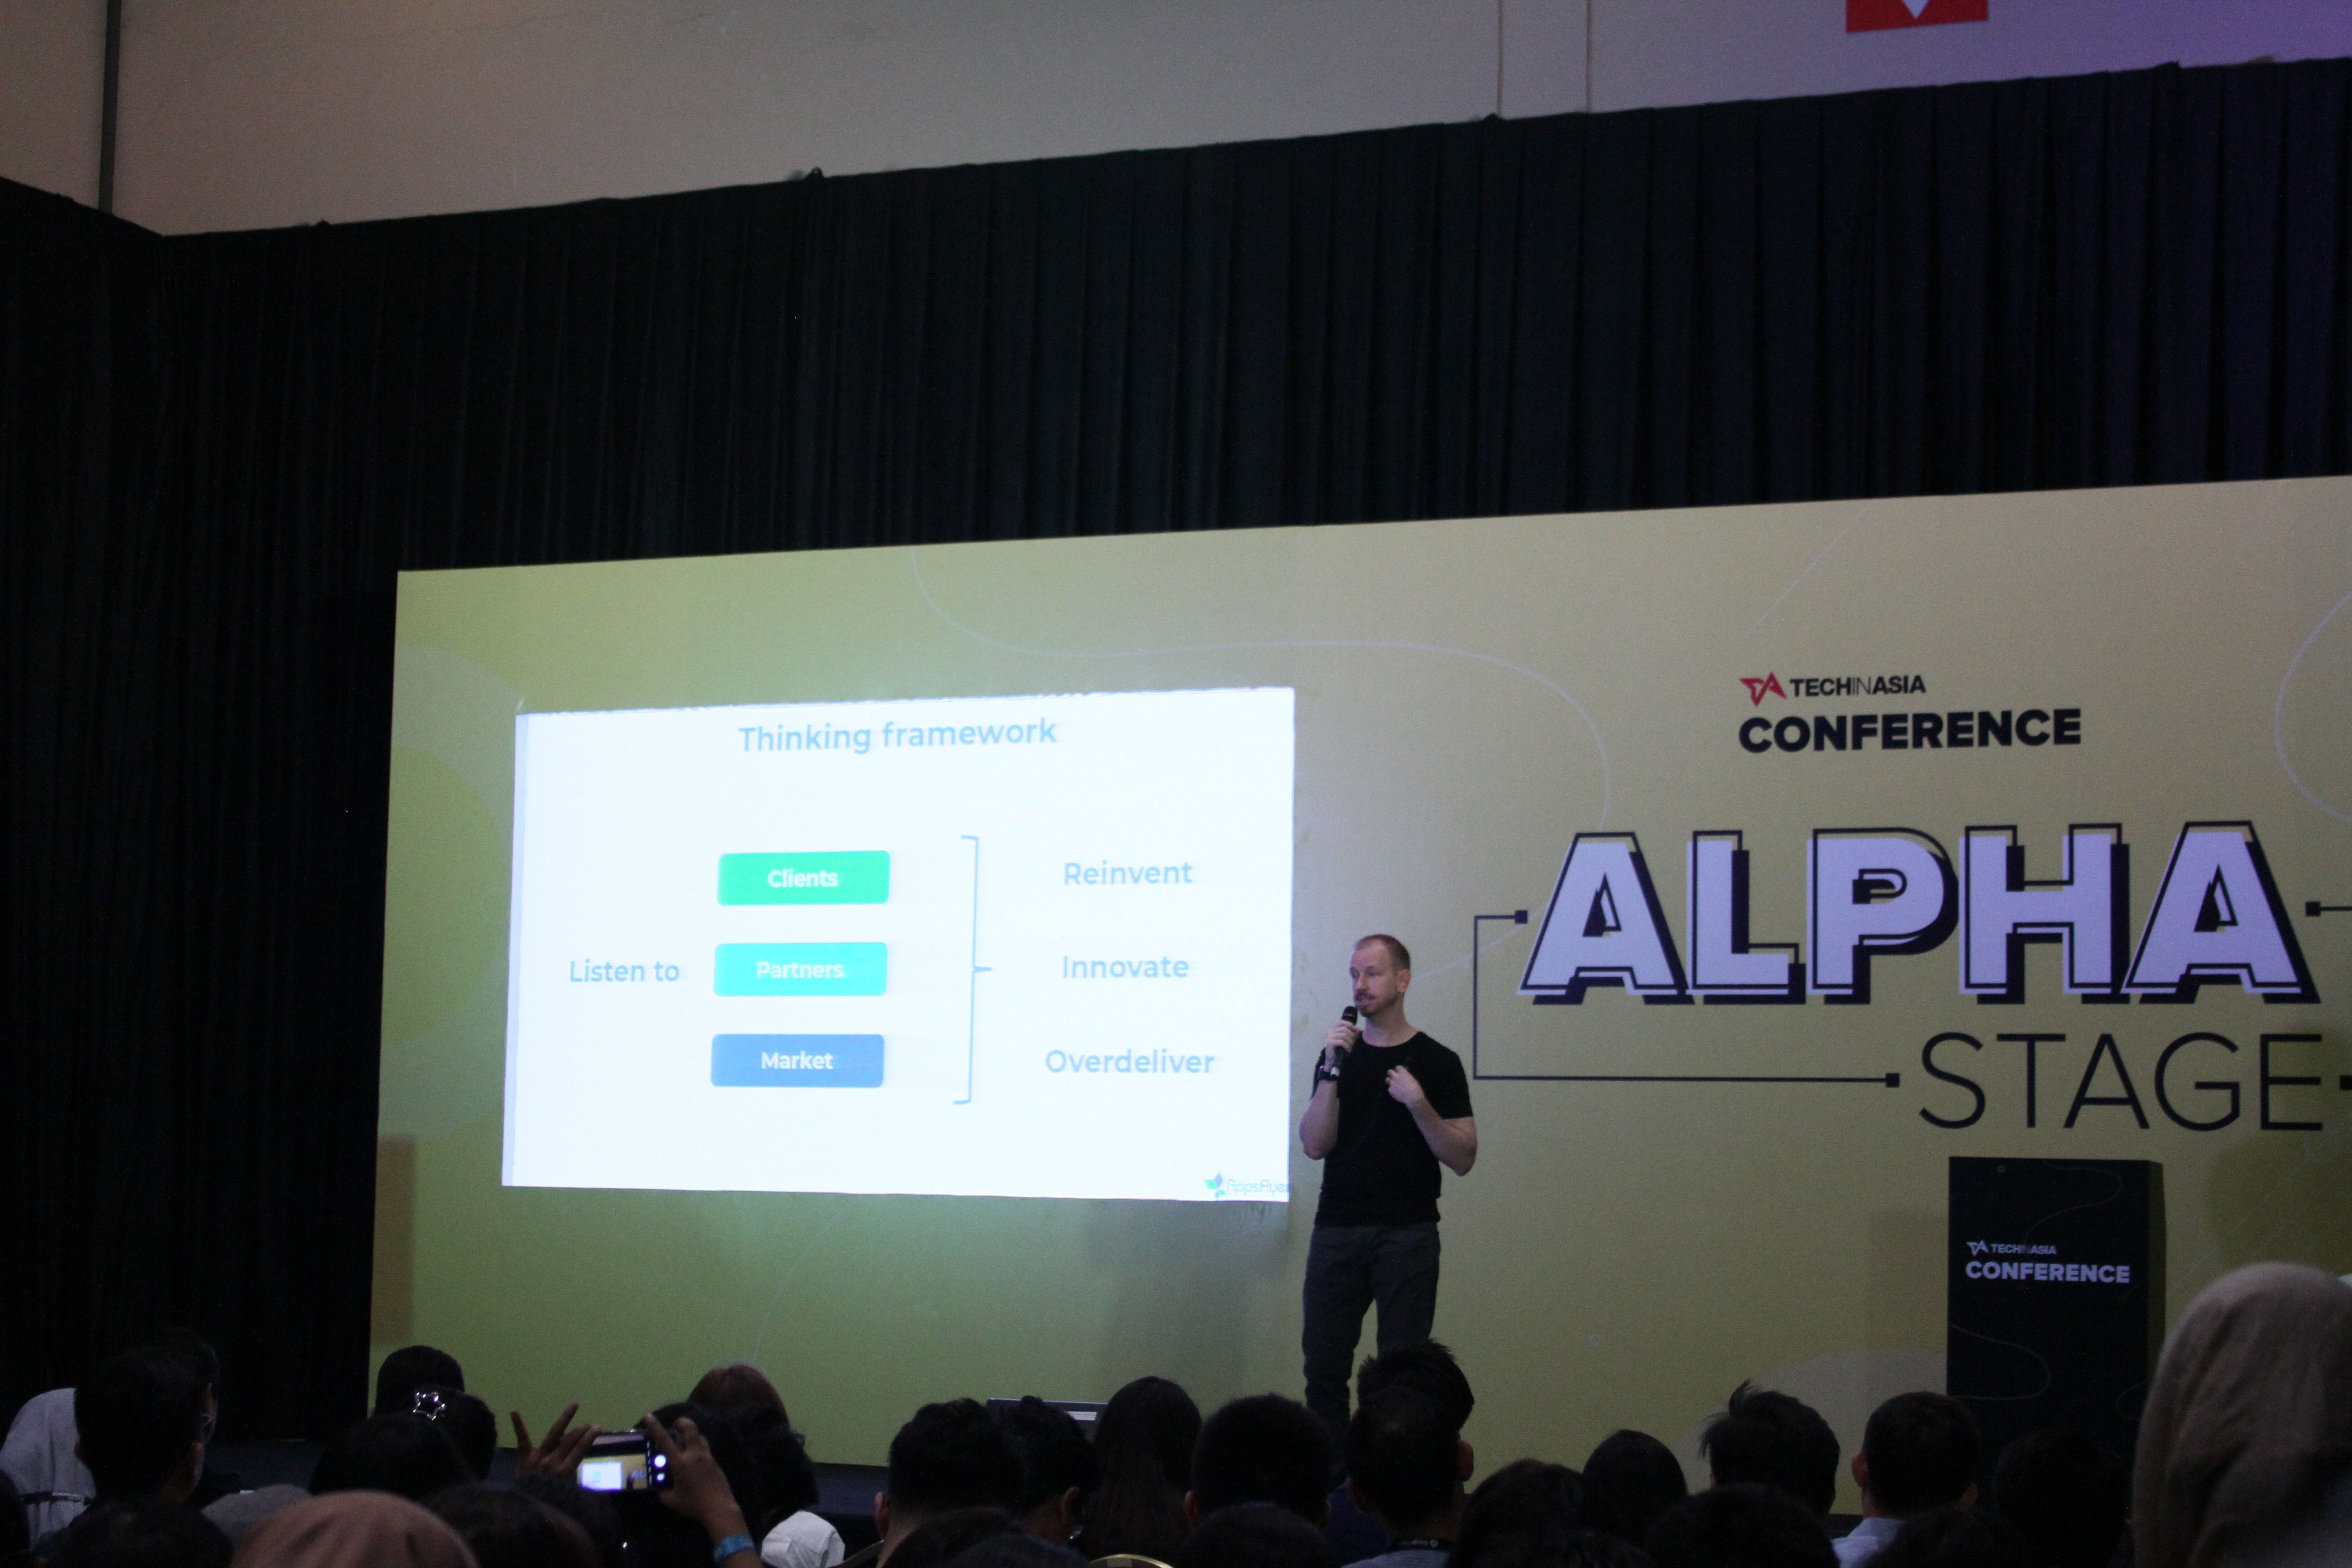 Tech in Asia Conference 2019